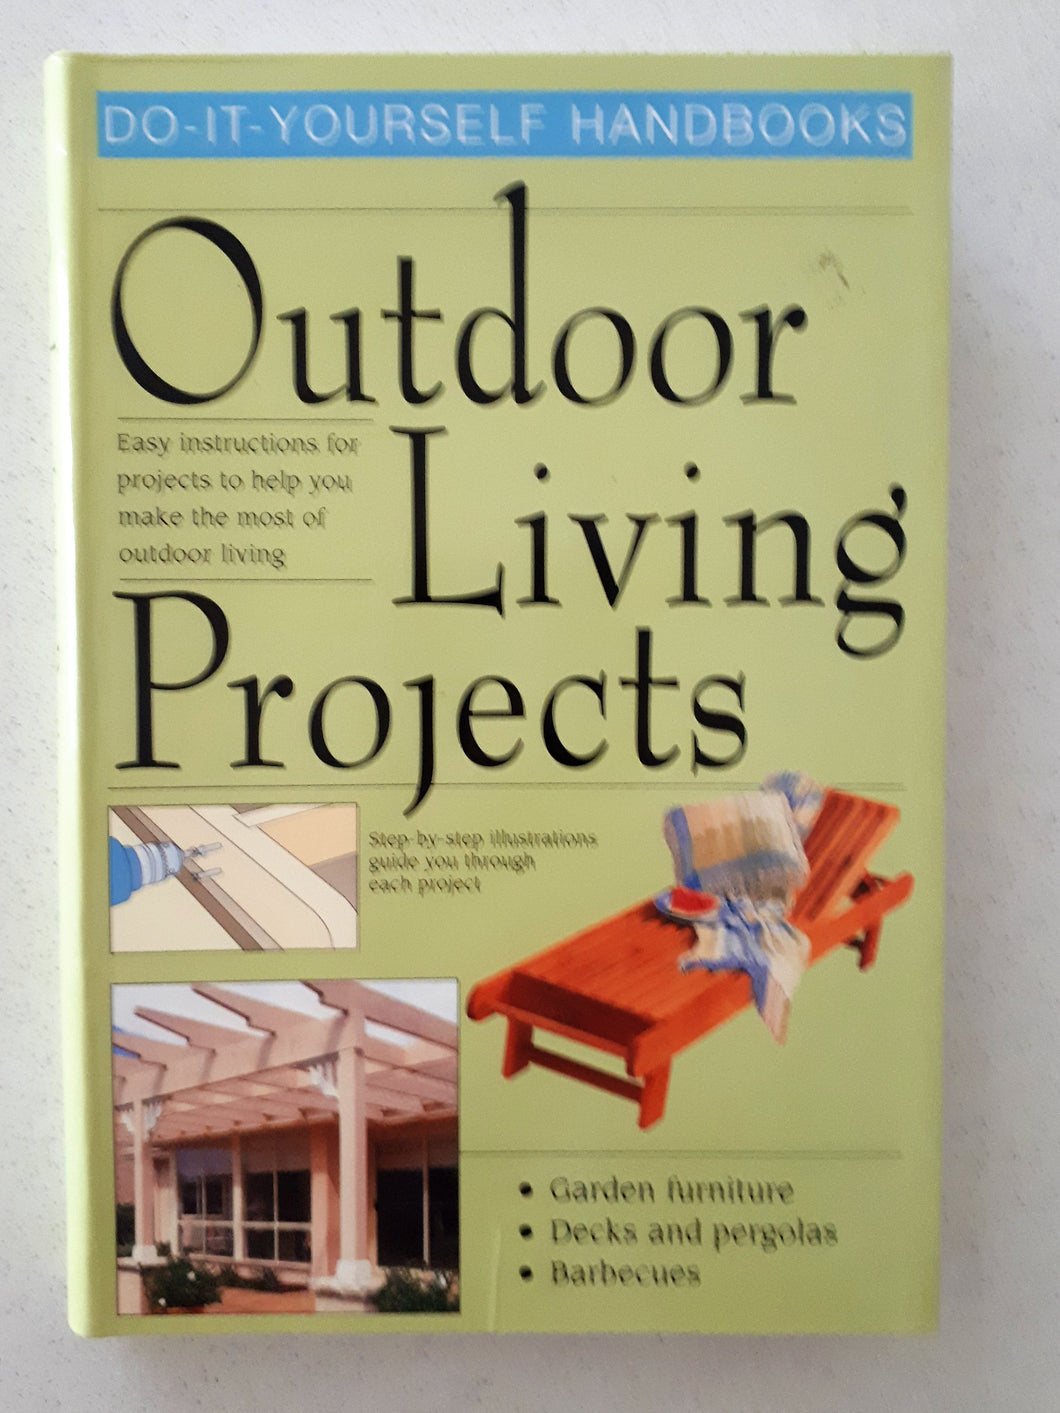 Outdoor Living Projects by John Bowler & Frank Gardner